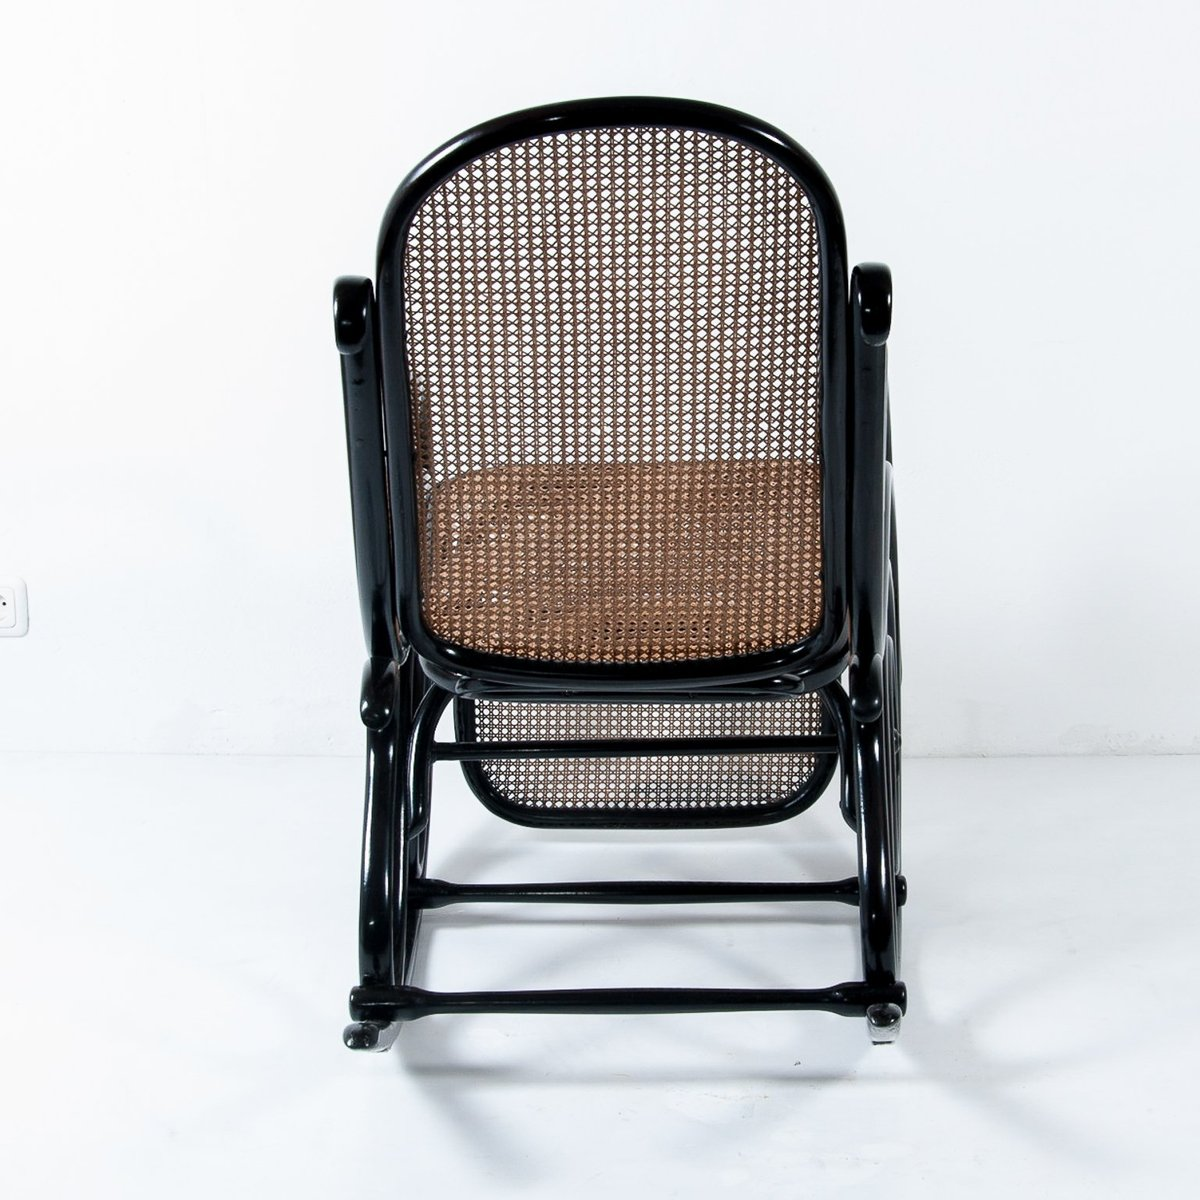 10 Rocking Chair with Footrest from Thonet 6. $12018.00. Price per piece & Antique No. 10 Rocking Chair with Footrest from Thonet for sale at ...